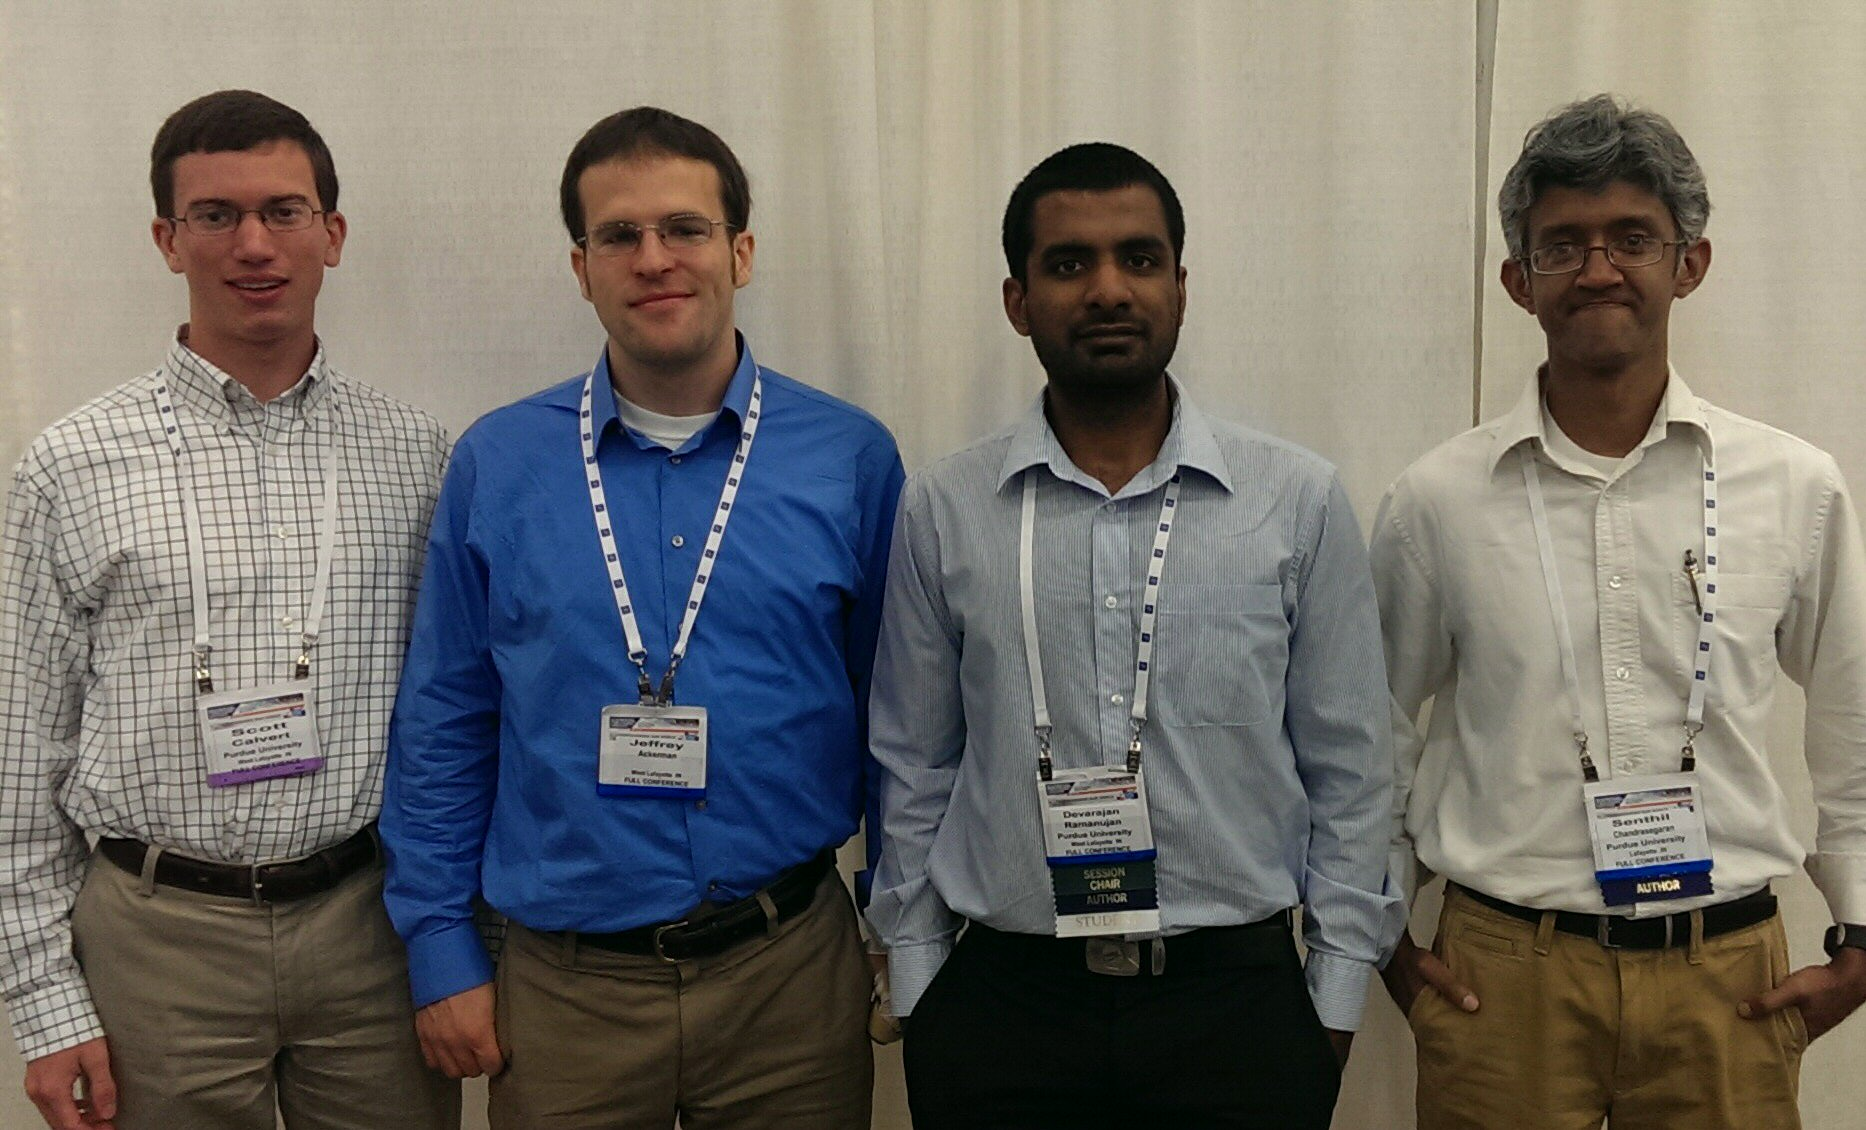 Purdue Students win ASME IDETC/CIE 2014 Student Design Competition